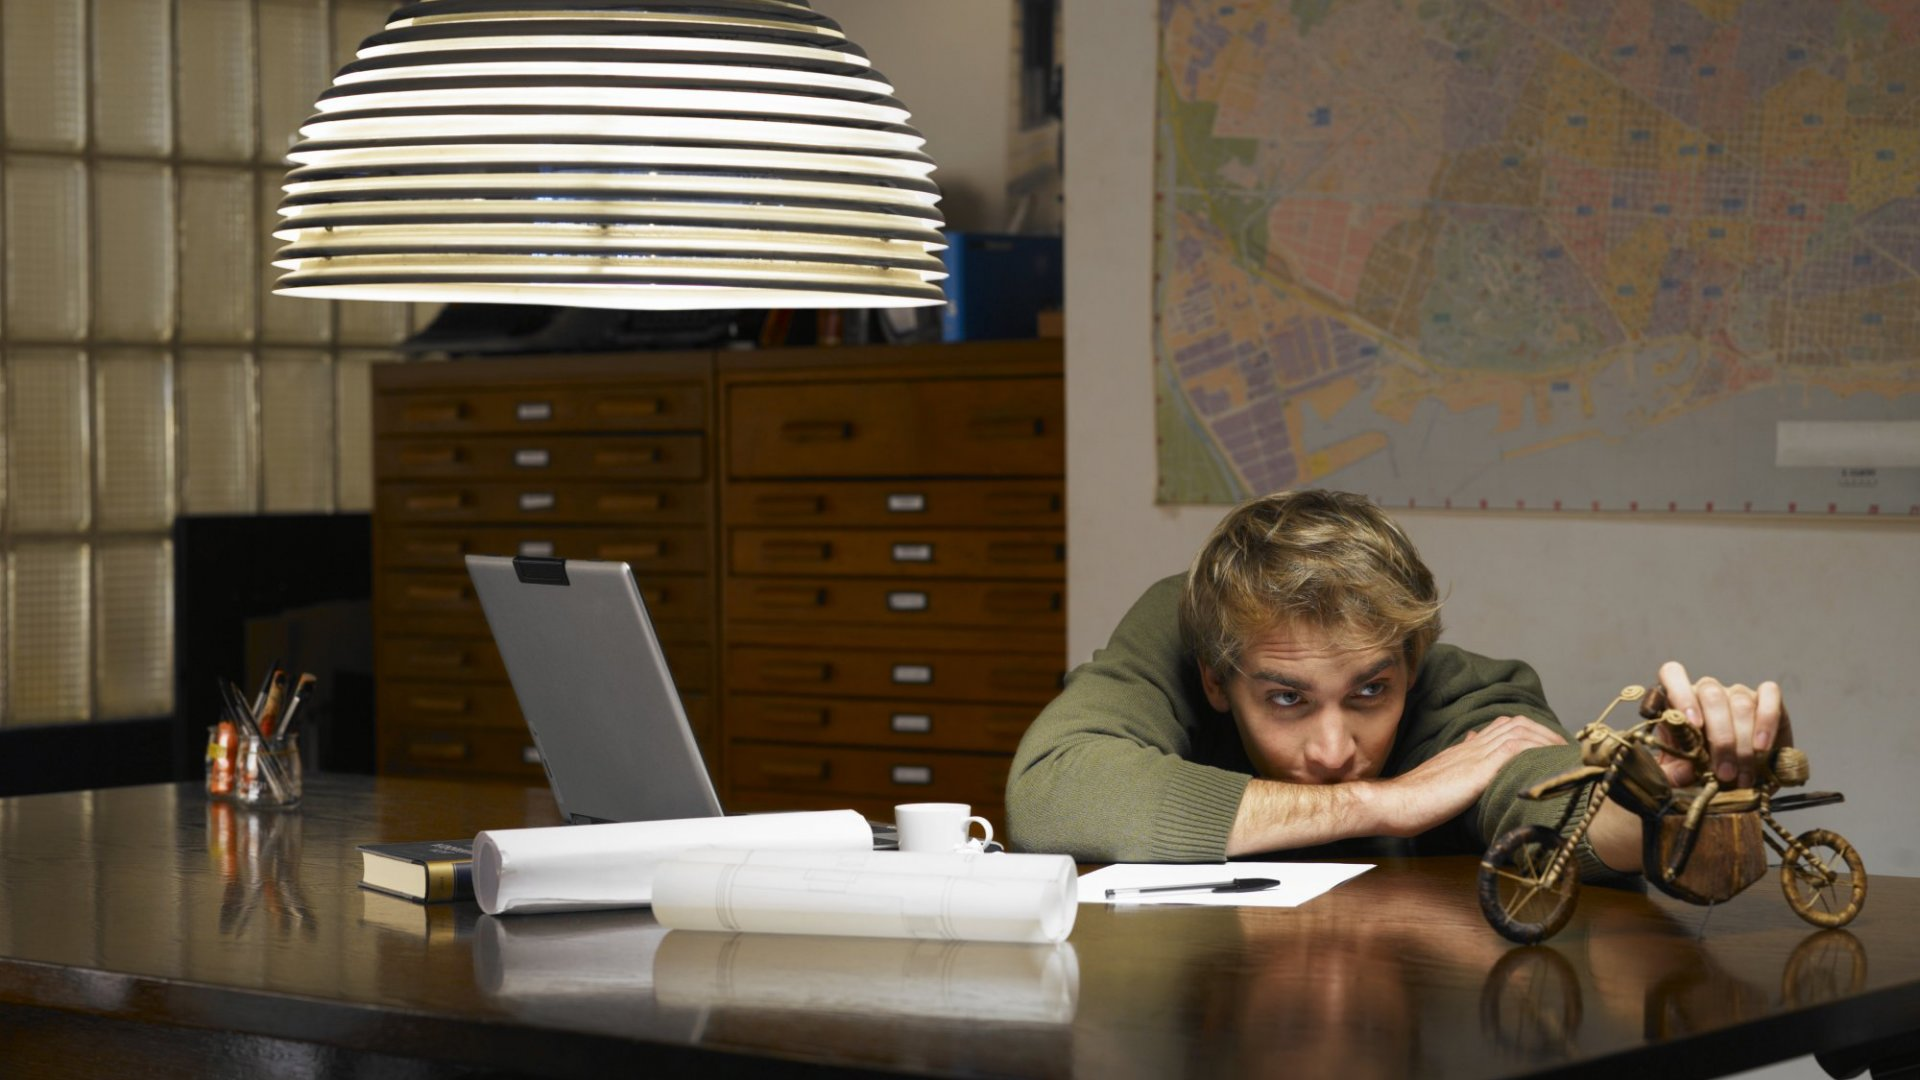 How to Overcome Procrastination in 3 Simple Steps